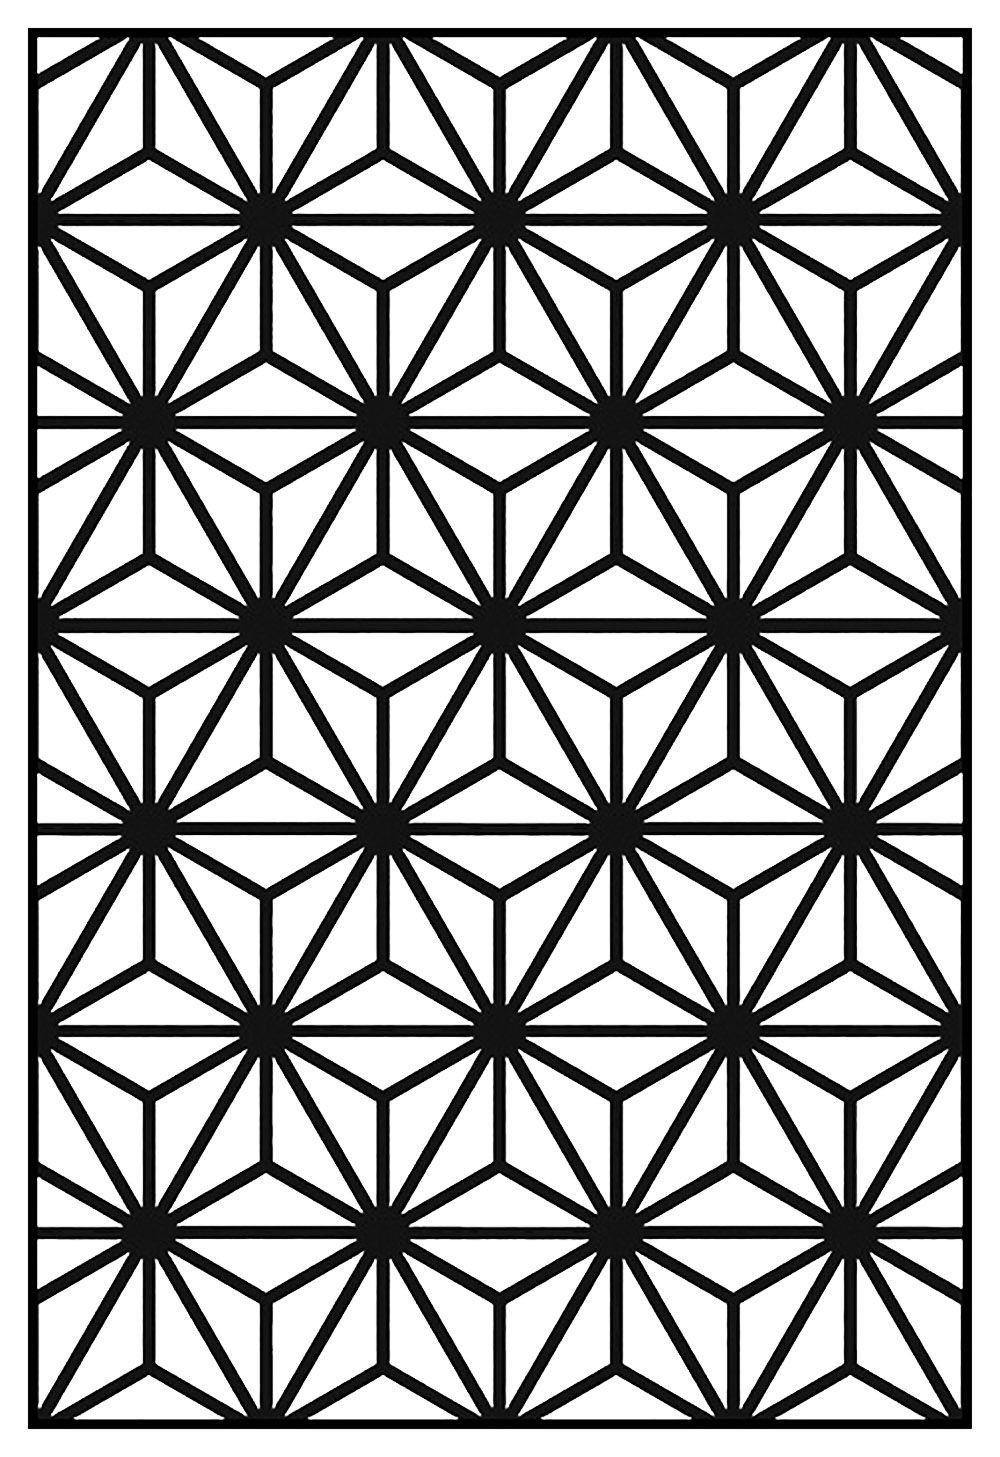 Art deco pattern adult coloring page style n from the gallery